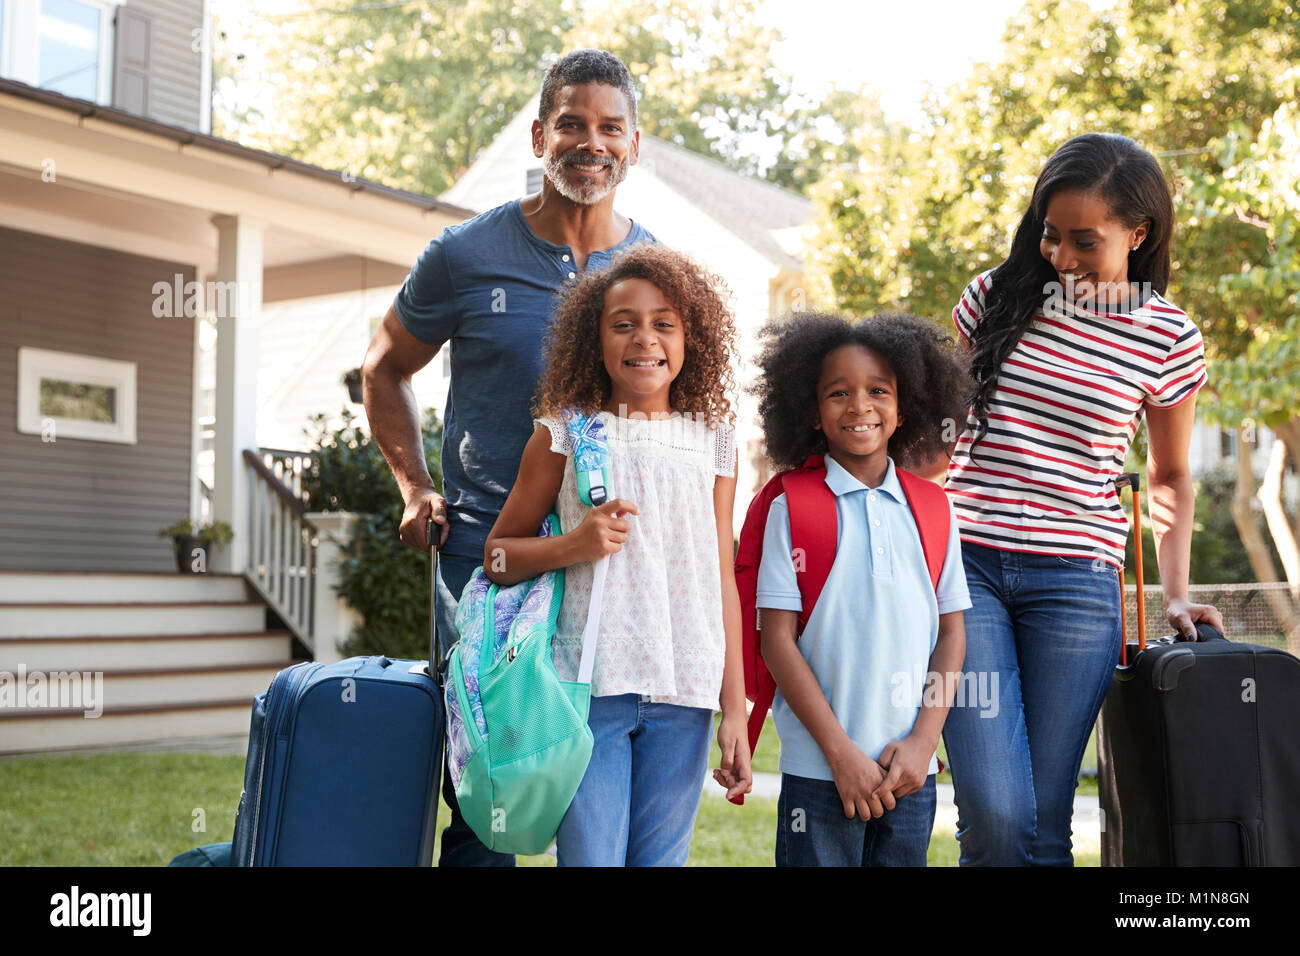 Portrait Of Family With Luggage Leaving House For Vacation - Stock Image